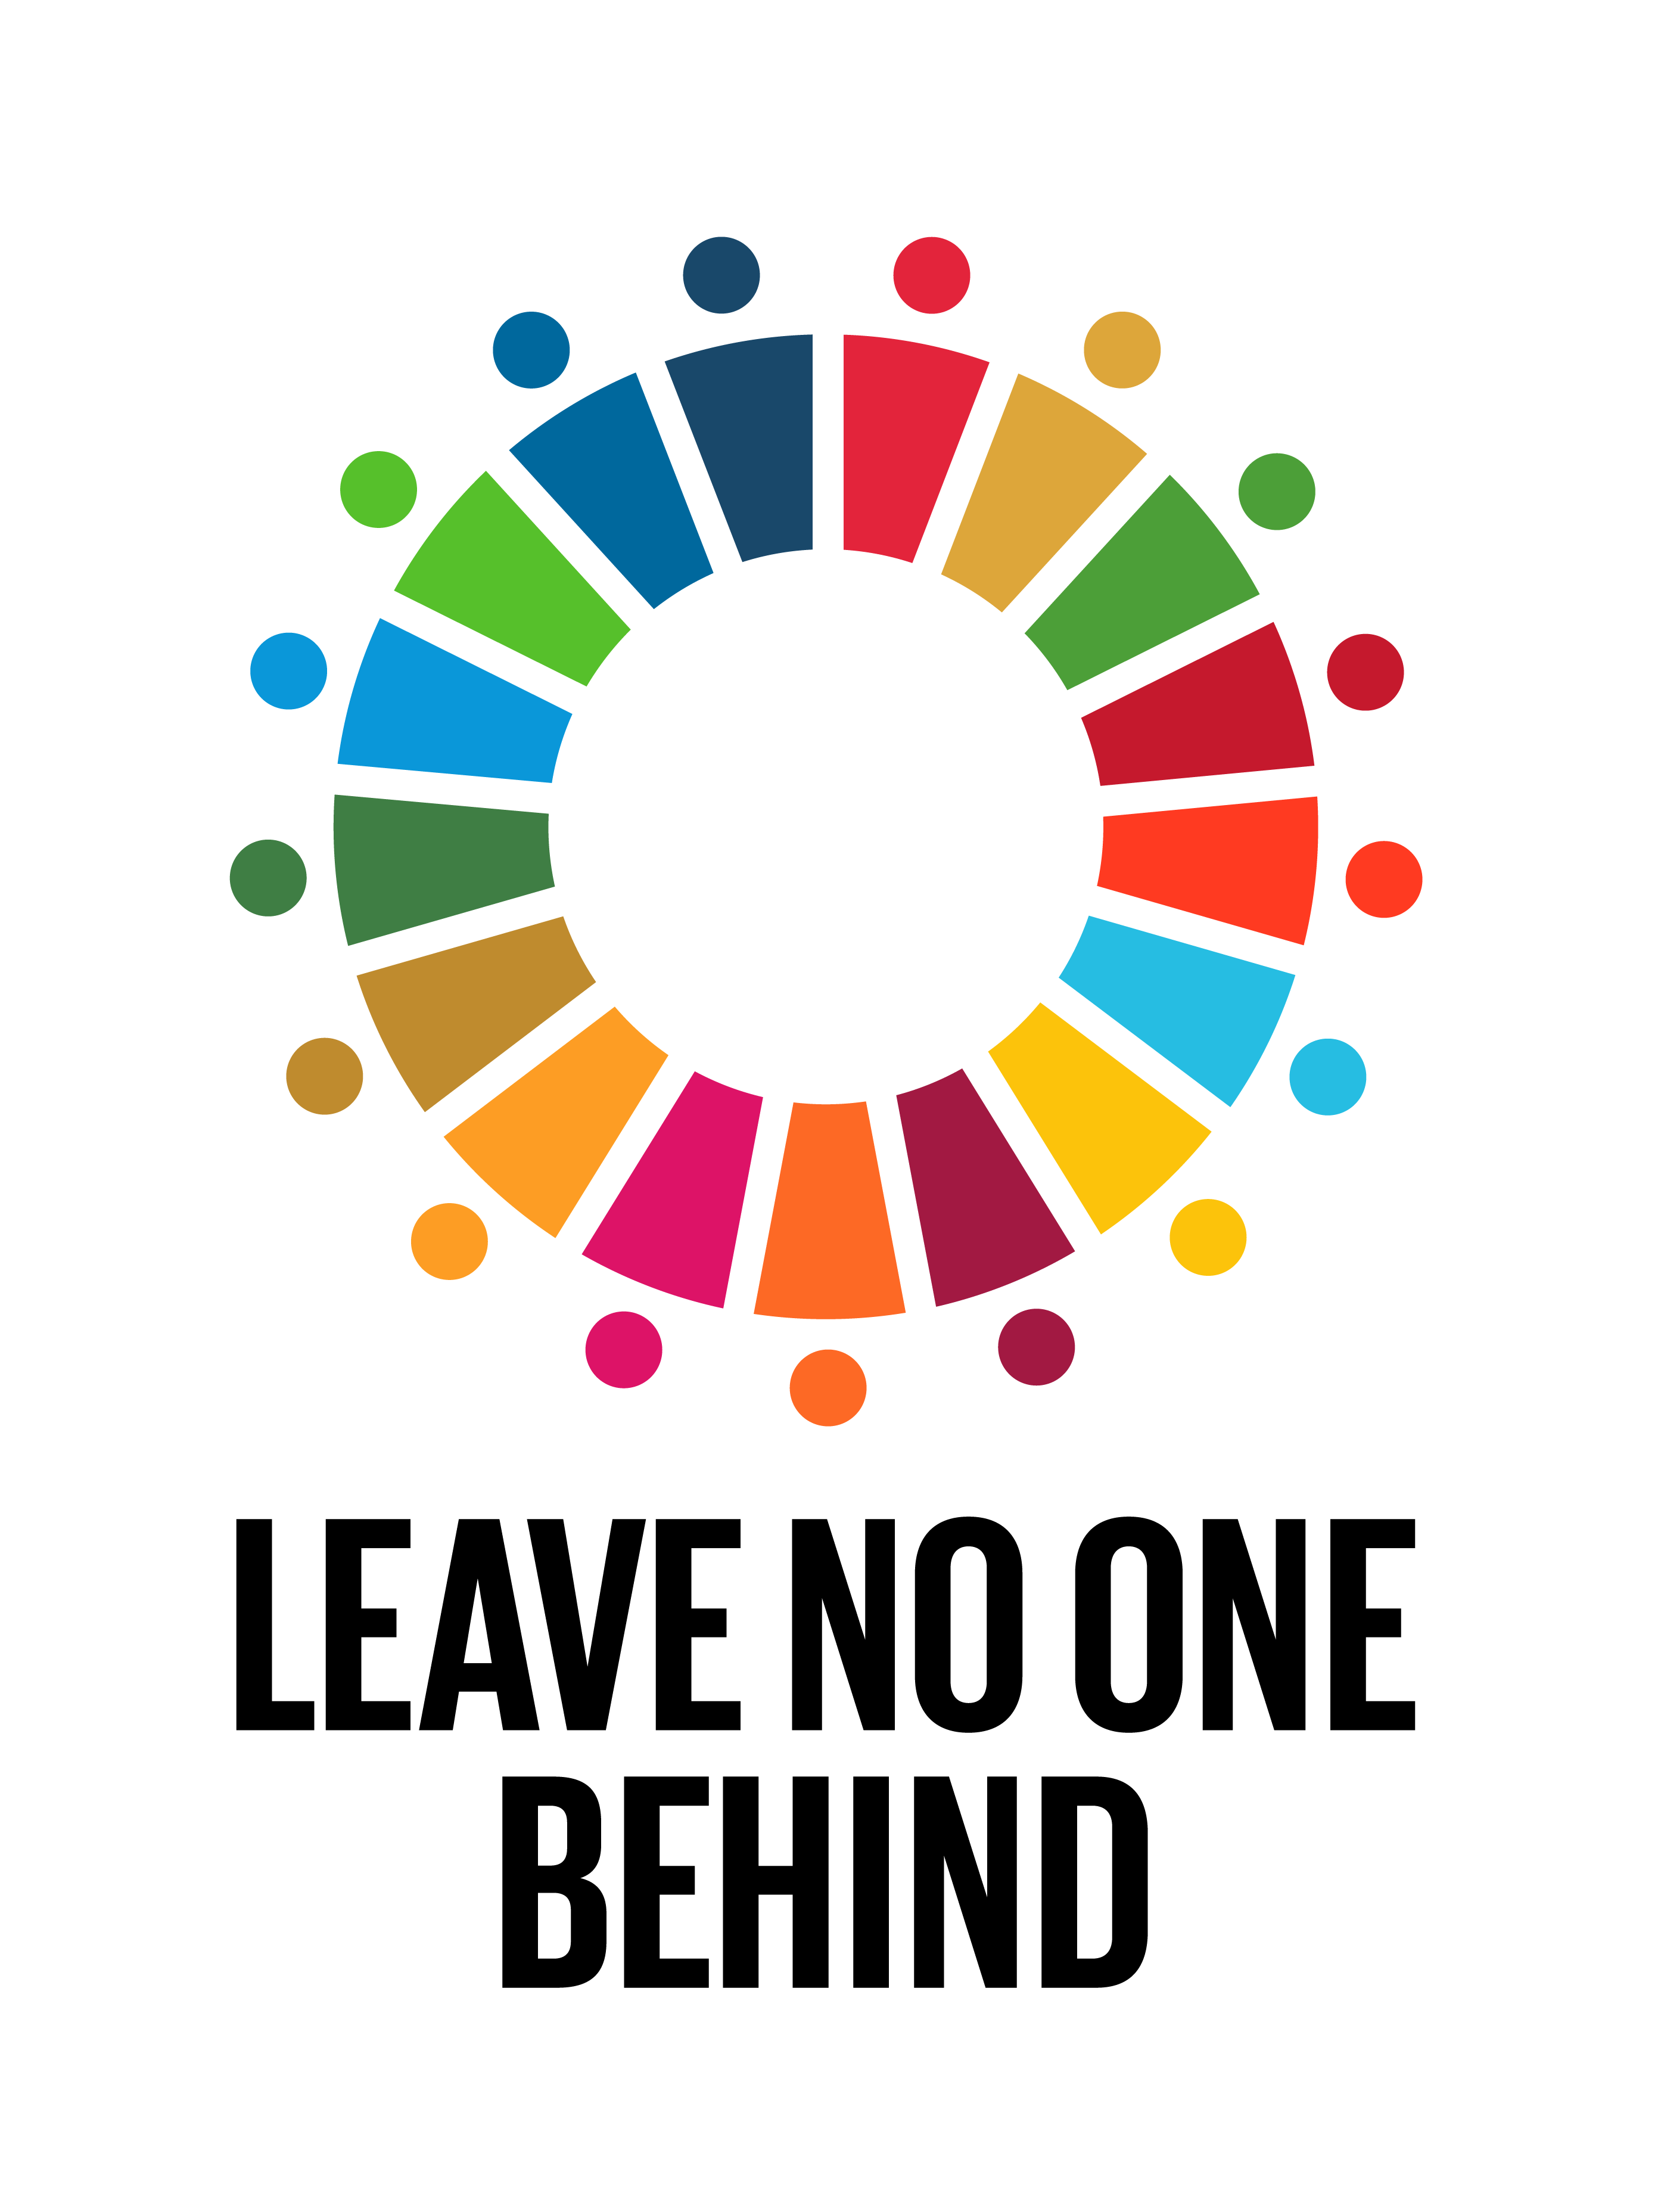 Leaving No One Behind (LNOB) is our mantra. The key objectives within this mantra are: - Inclusion - Pro-Equity - Pro-Equality